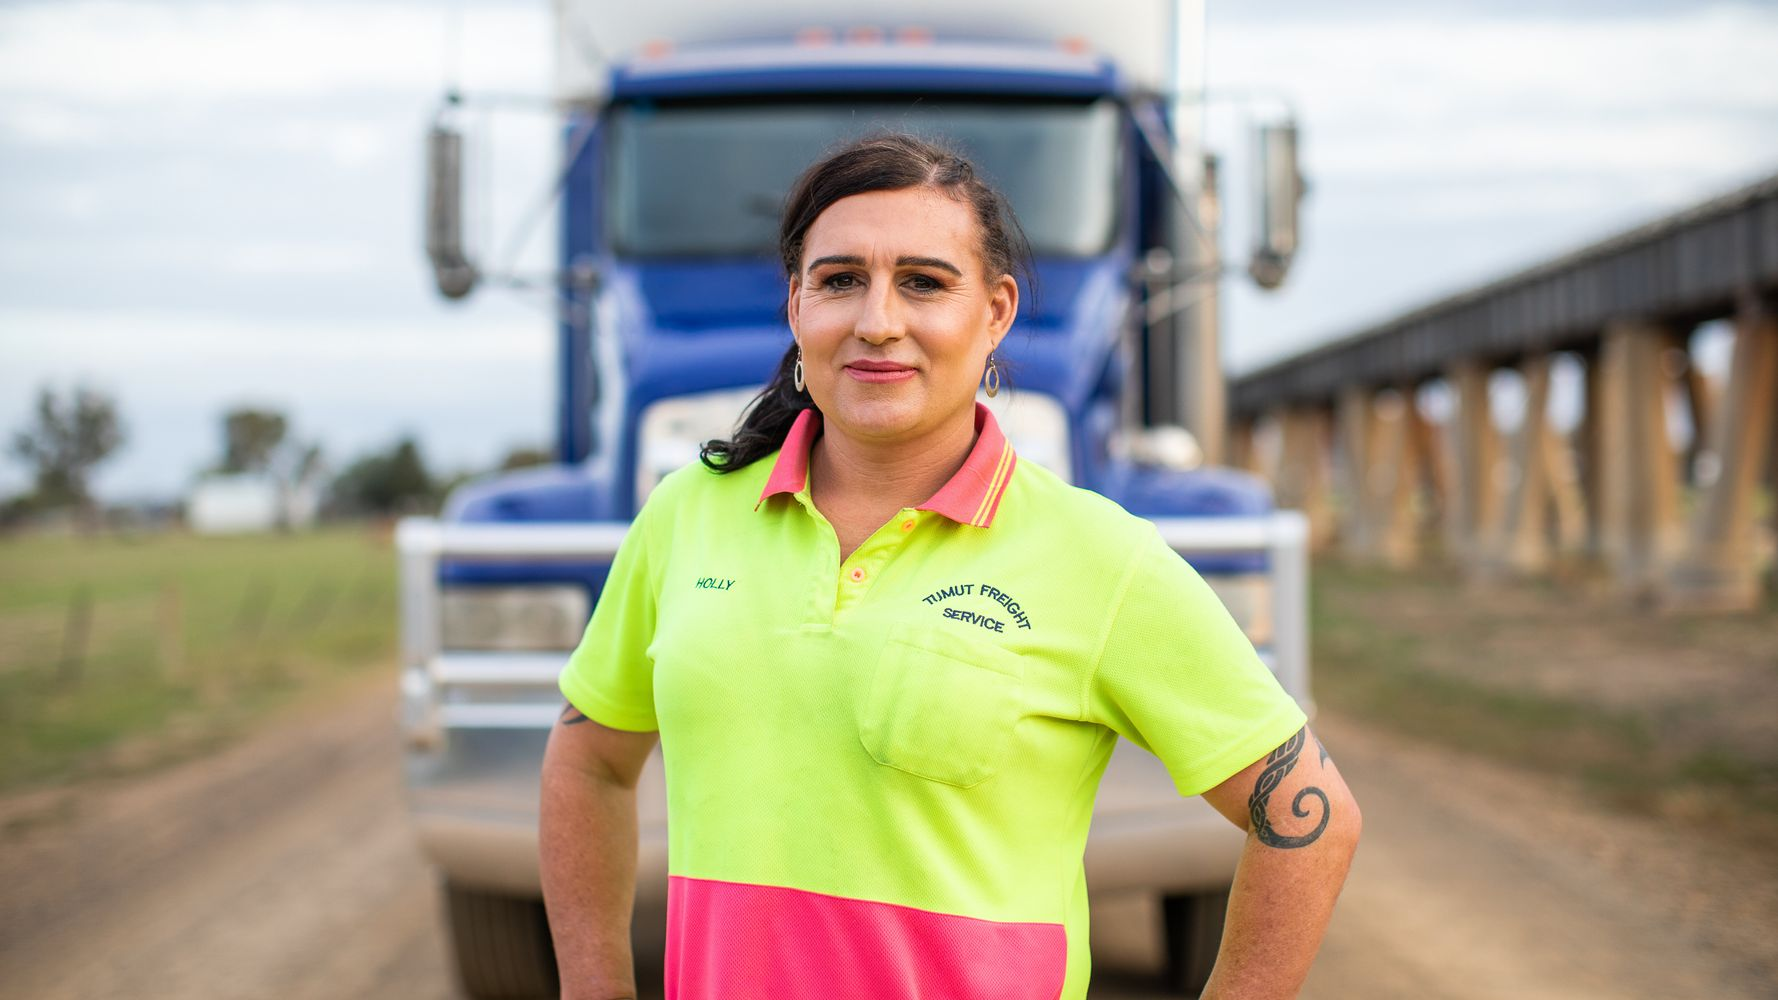 HuffPost Her Stories: This Truck Driver Transformed Her Town's LGBTQ Biases